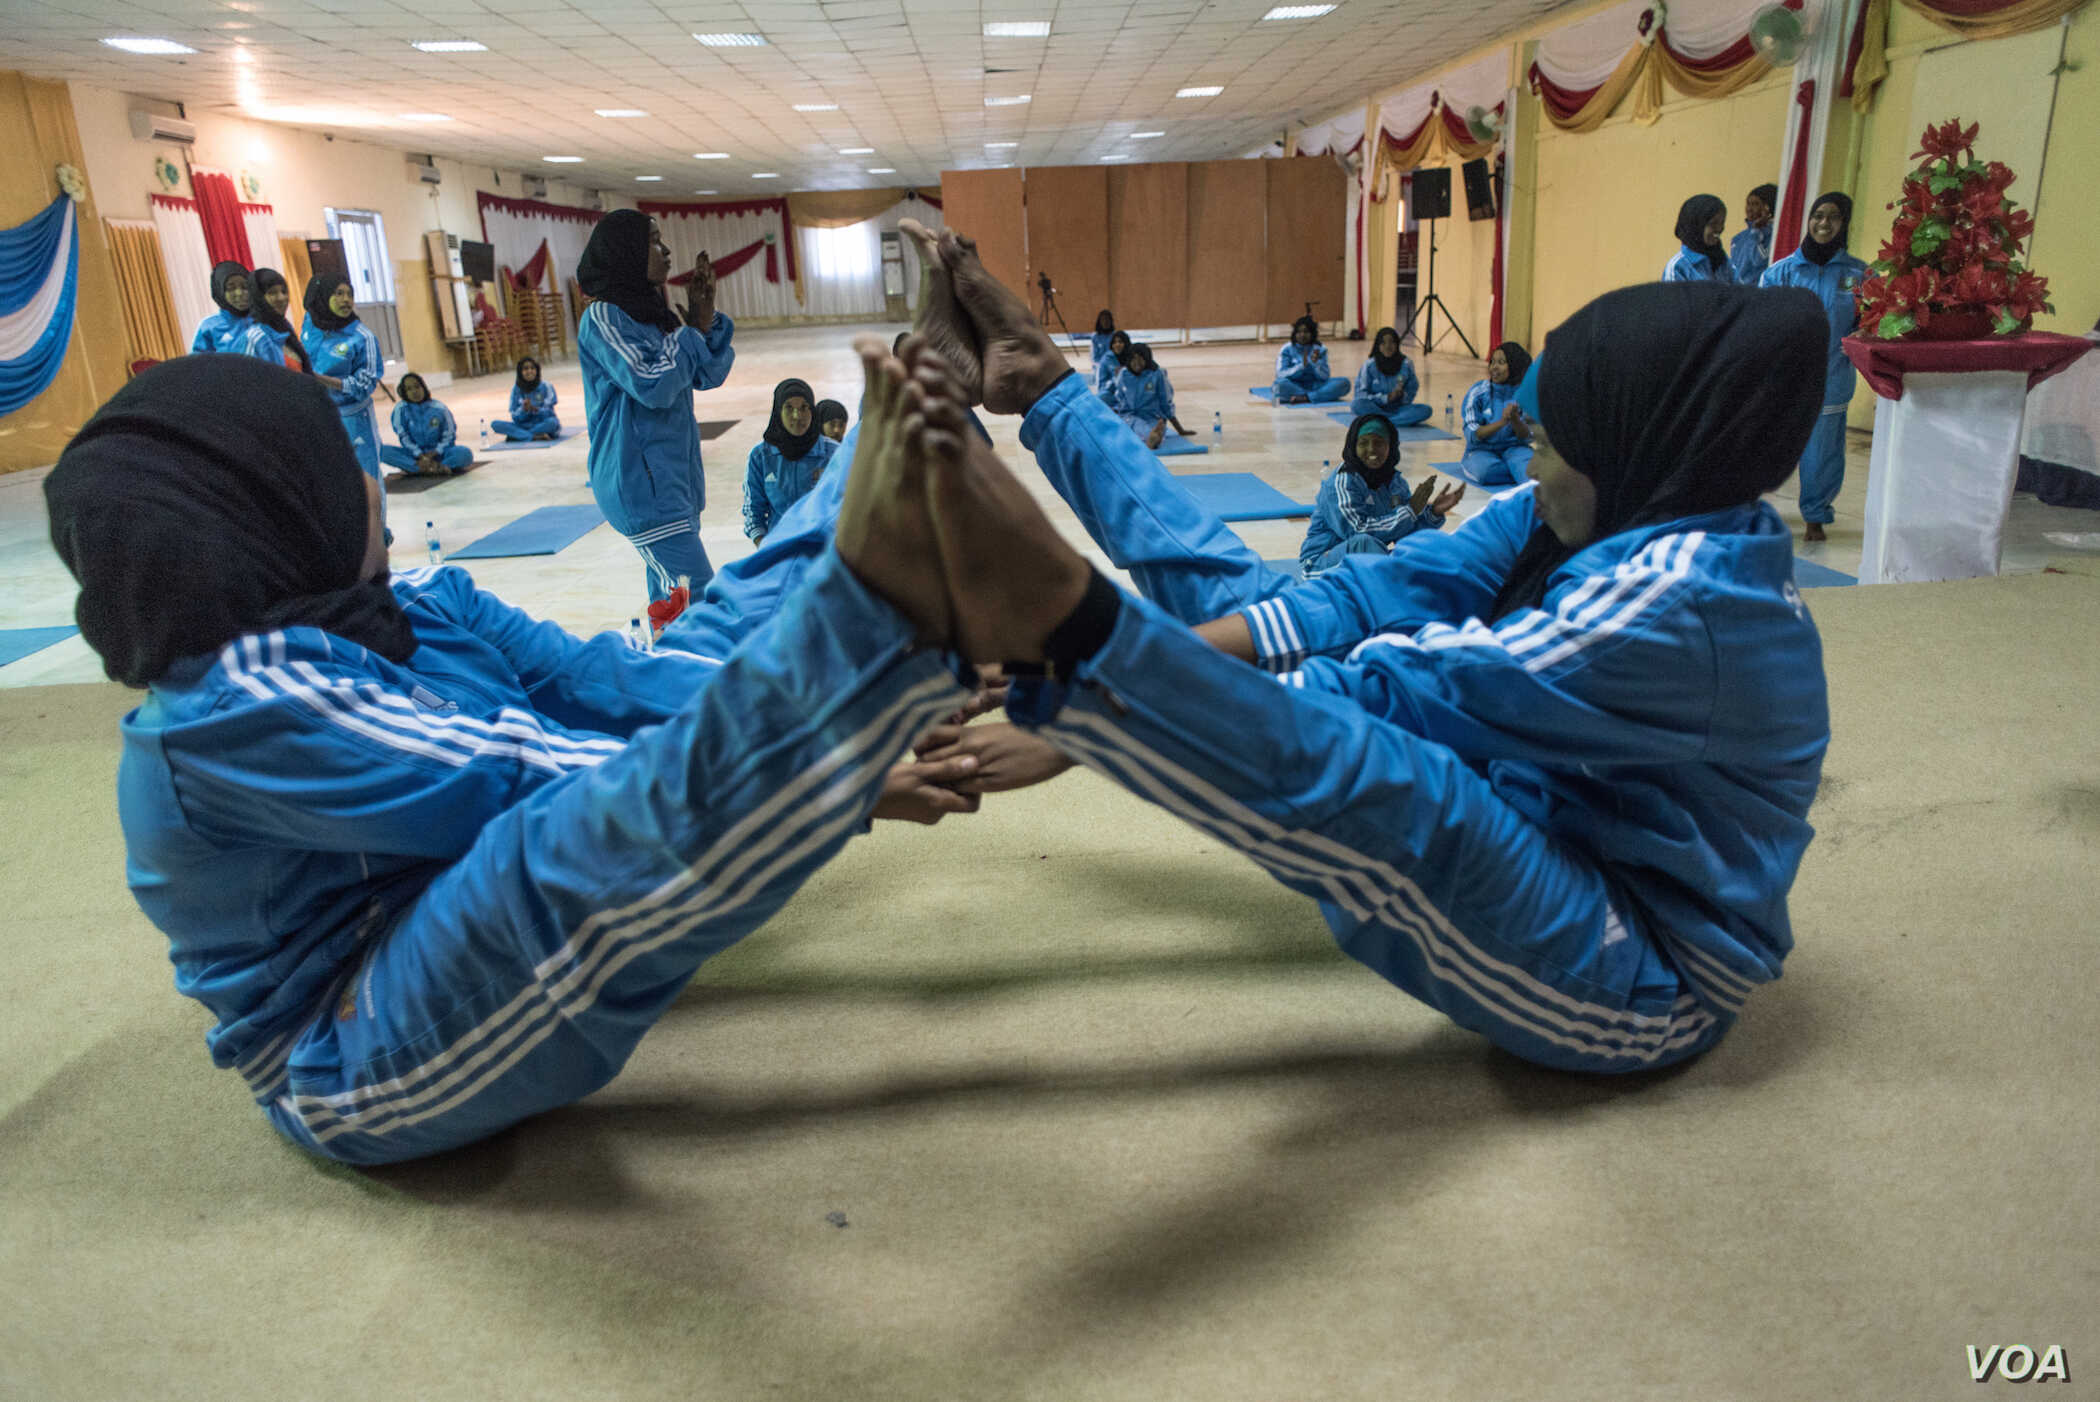 Two women practice a pose during a mind-body wellness program for survivors of trauma in Mogadishu, Somalia, Jan. 16, 2017. (J. Patinkin/VOA)